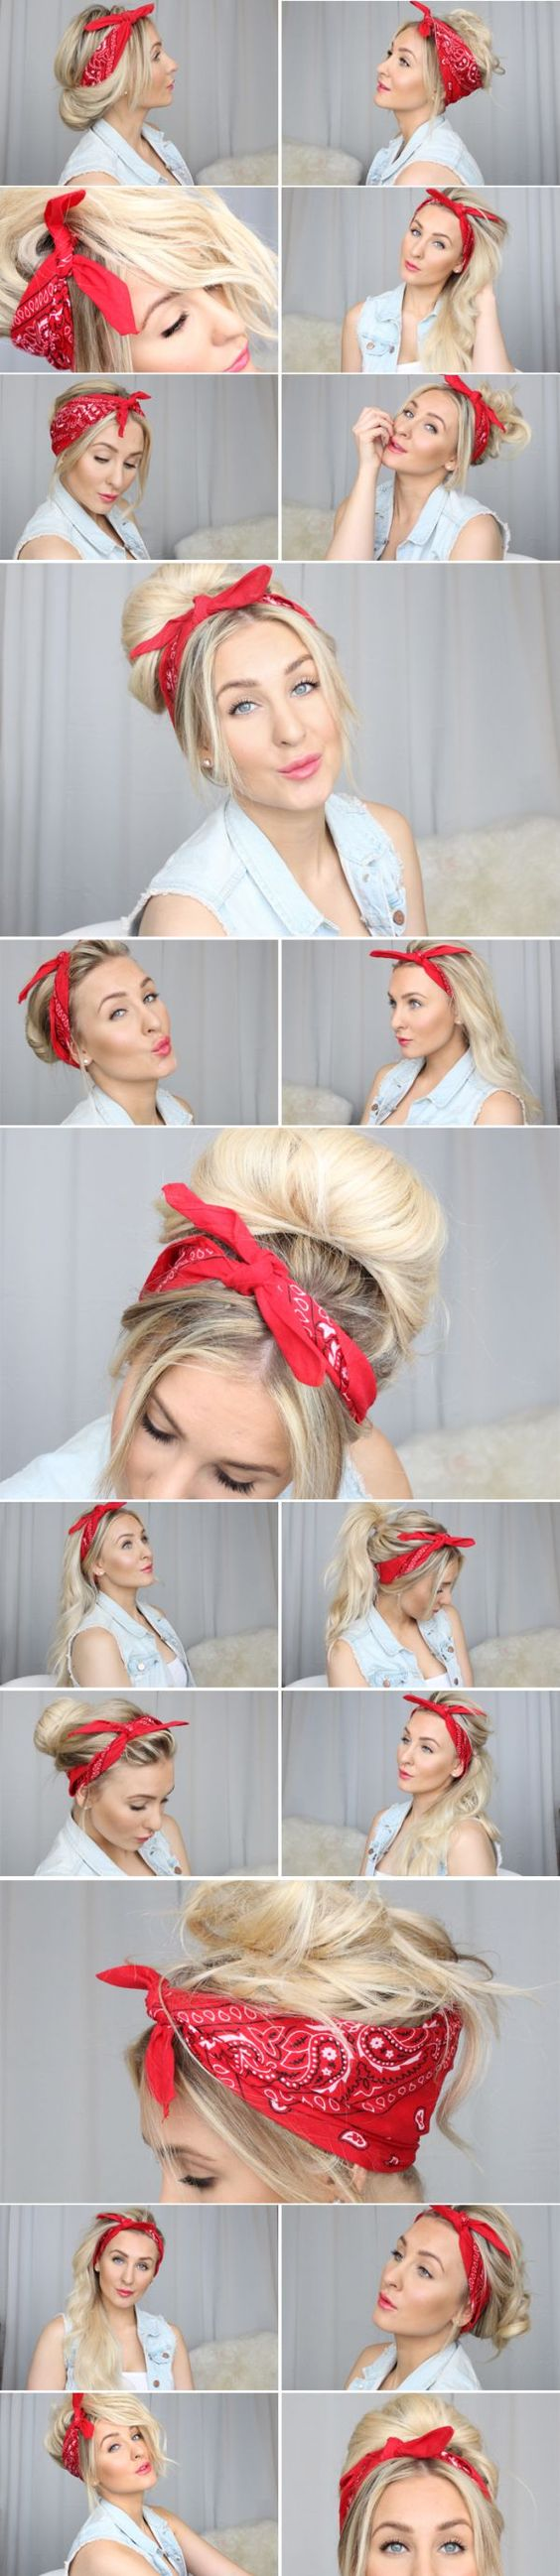 18 Hairstyle Hacks For Every Teen Girl Ever